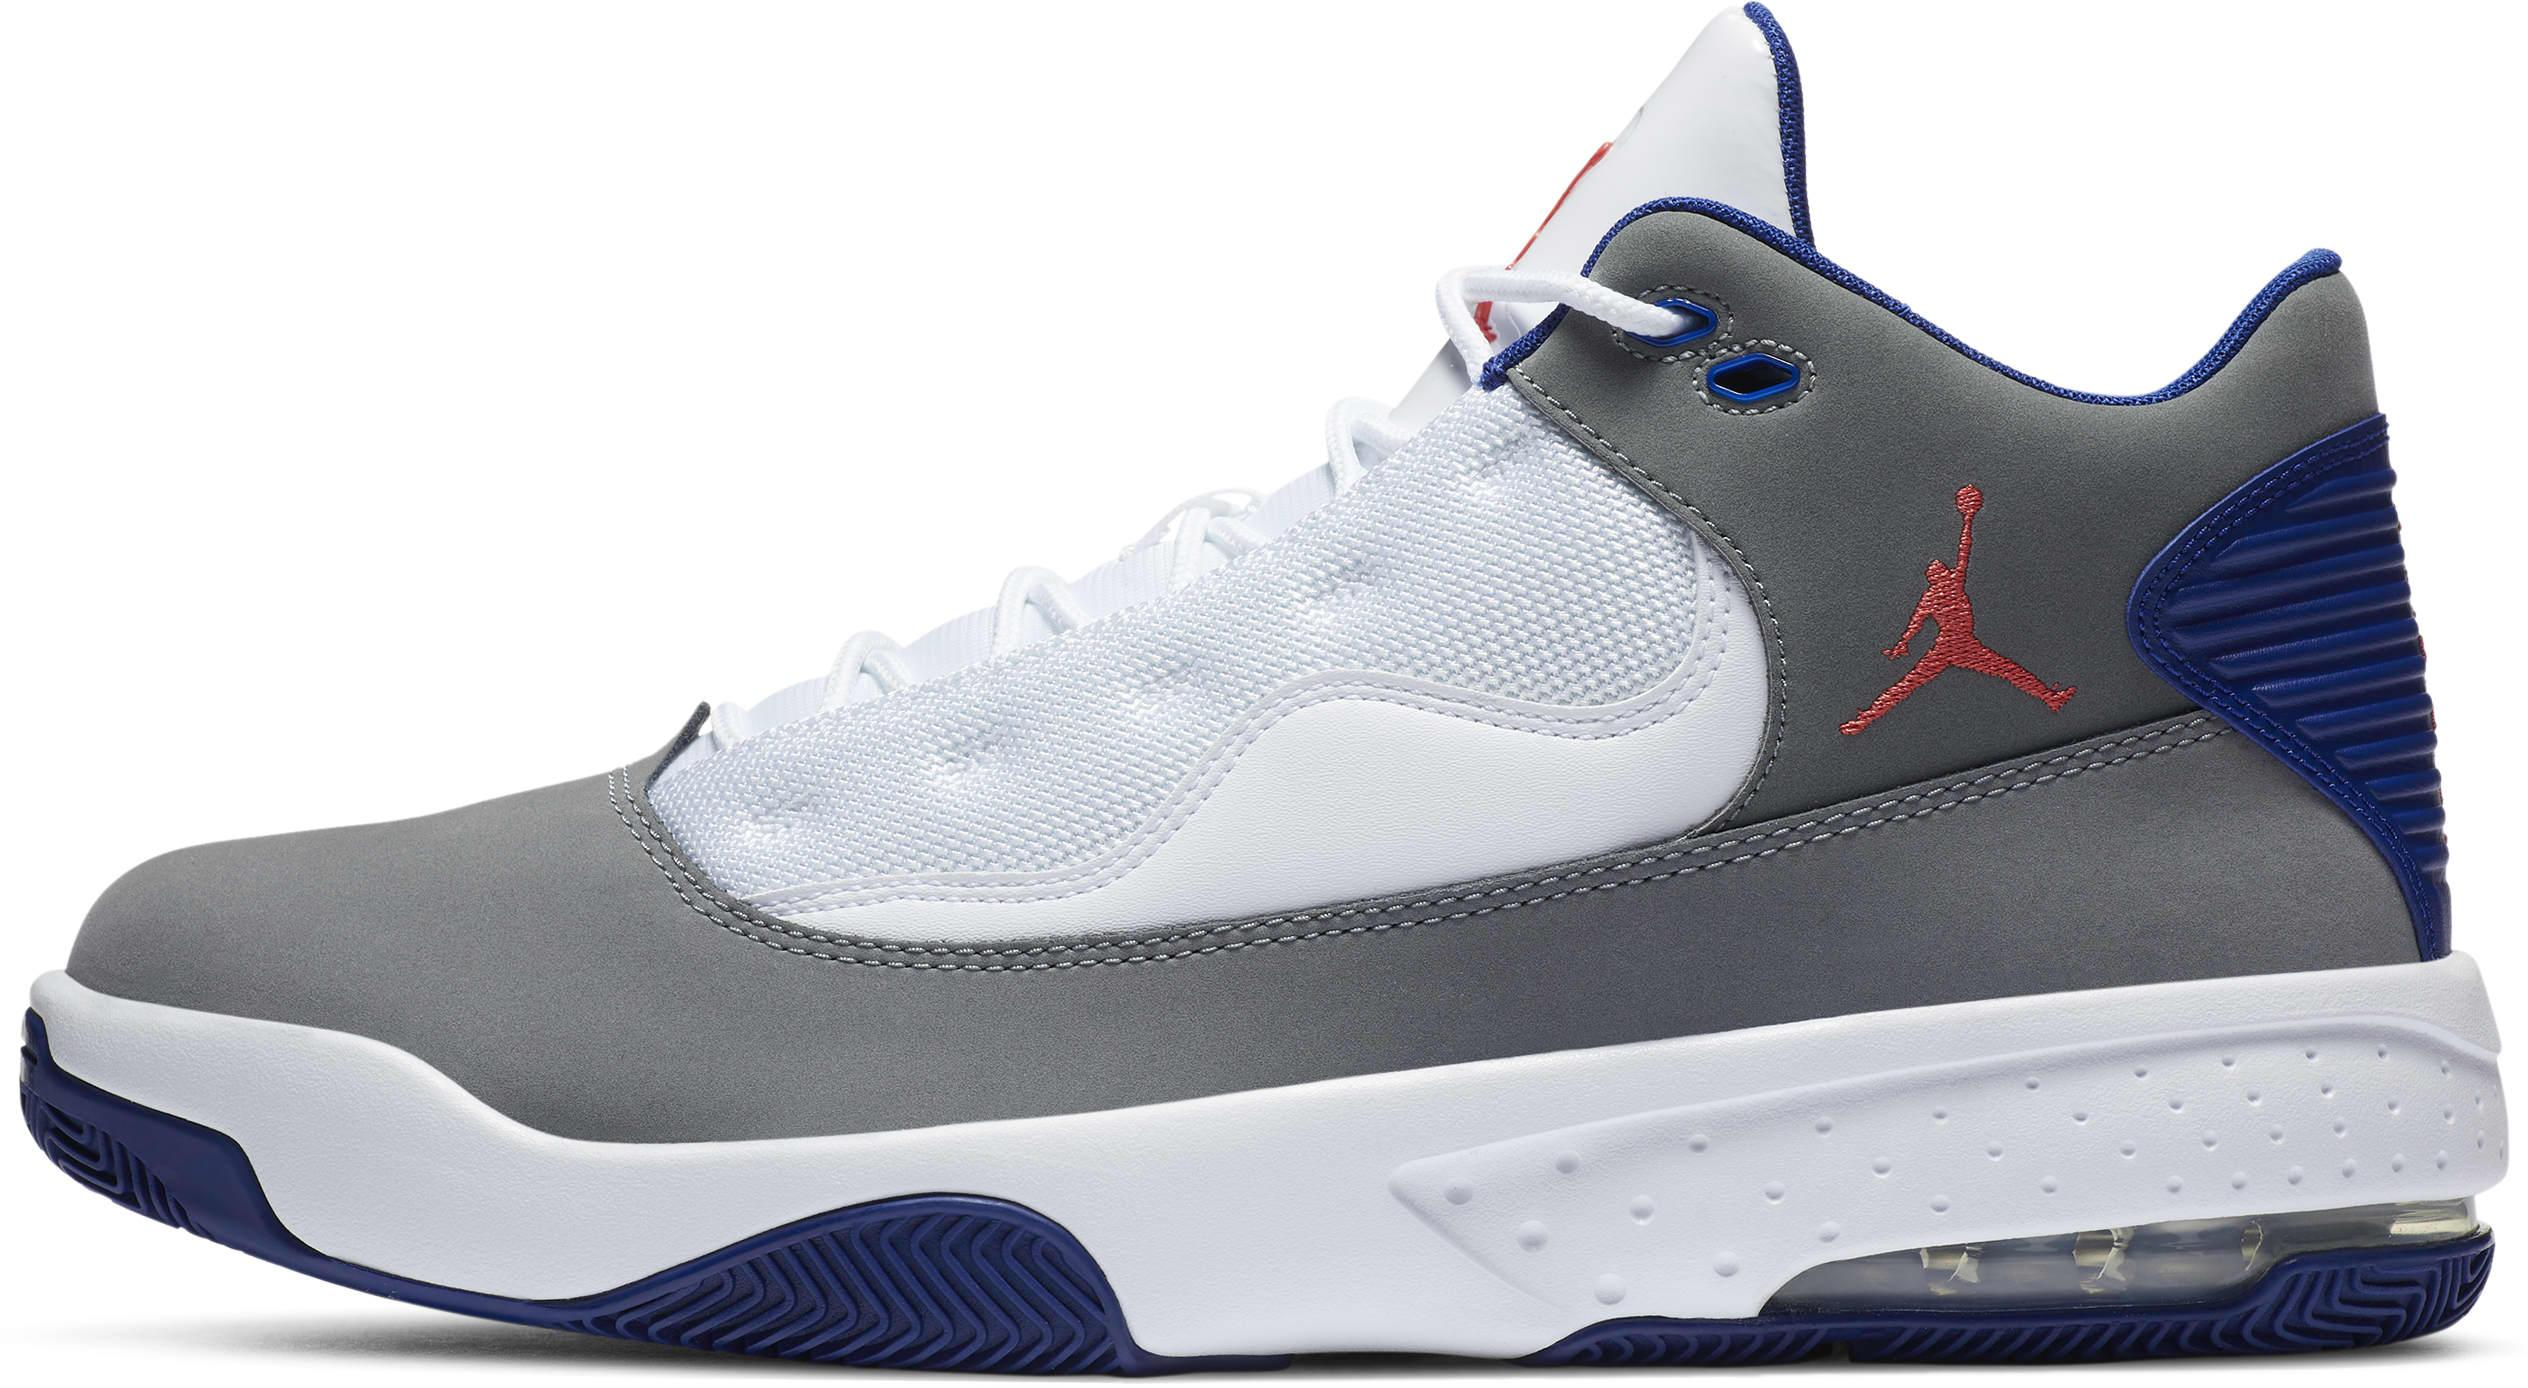 Jordan Max Aura 2 Smoke Grey/White/Deep Royal Blue/Track Red